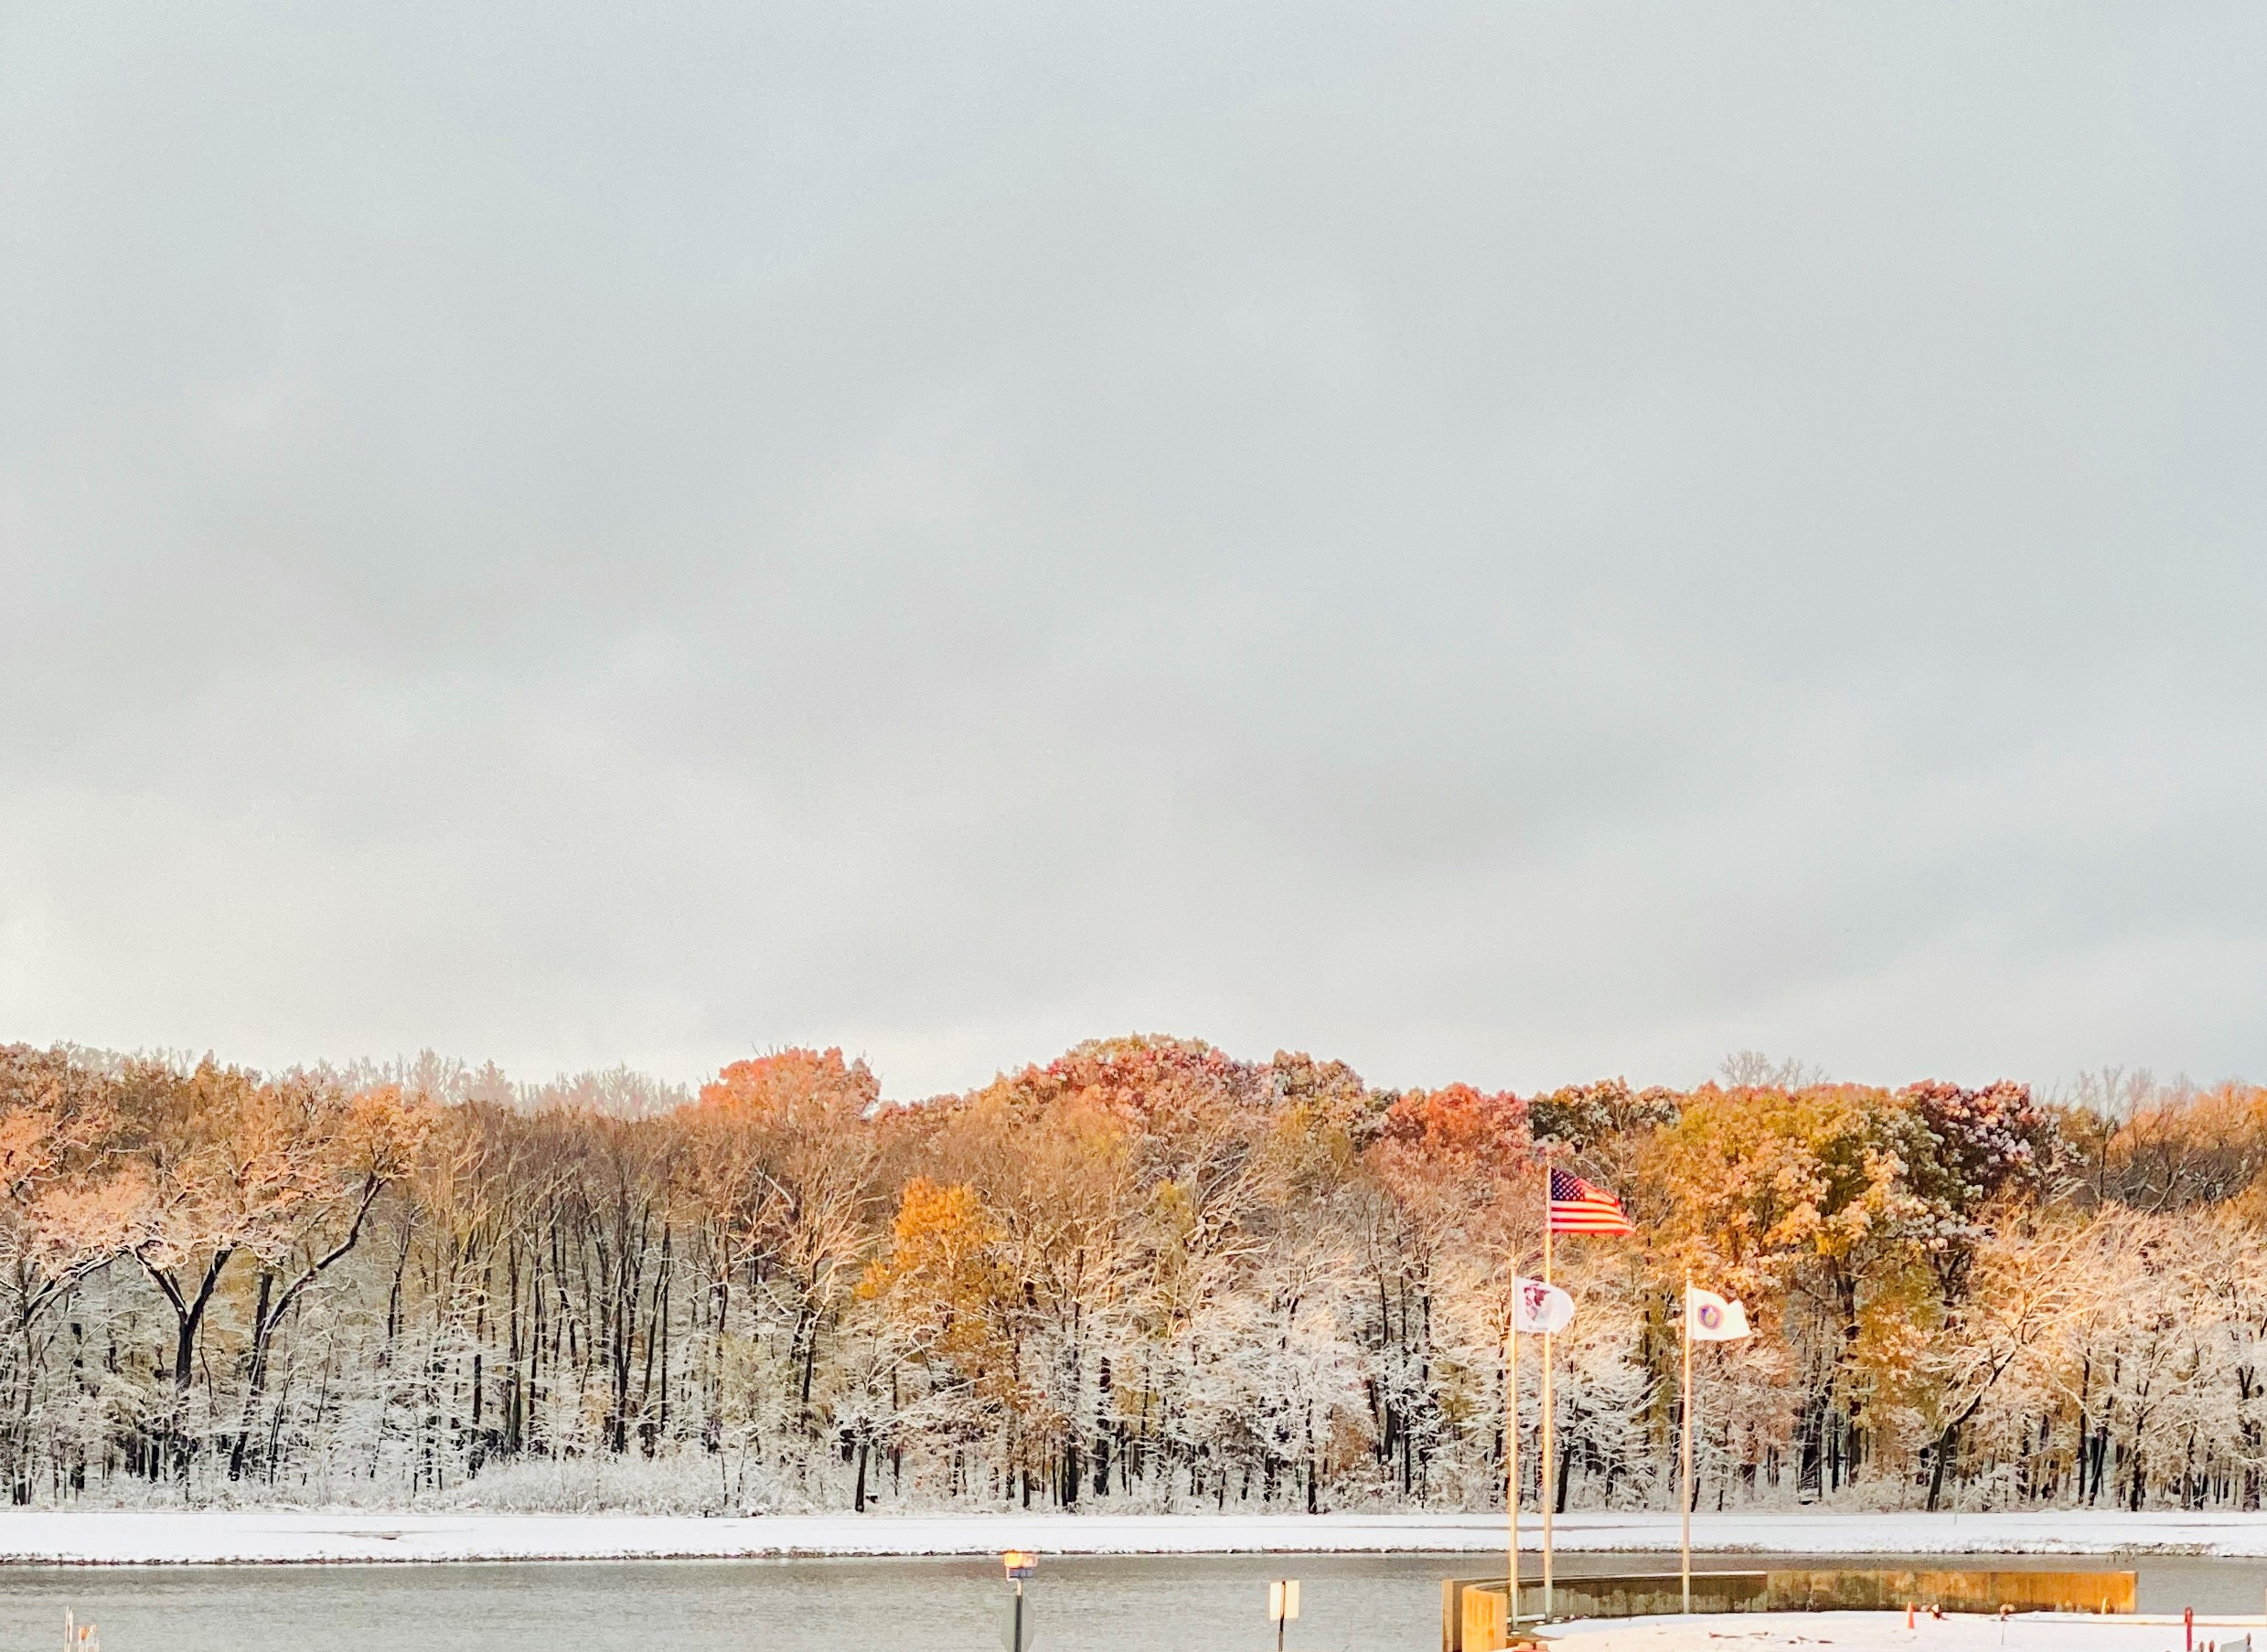 (1/2) Fermilab fall colors combine with winter snow — a rare, beautiful combination. sky, fall, autumn, winter, landscape, nature, tree, plant, woods, water, lake Photo: Sushmabhargavi Nimmalapalli